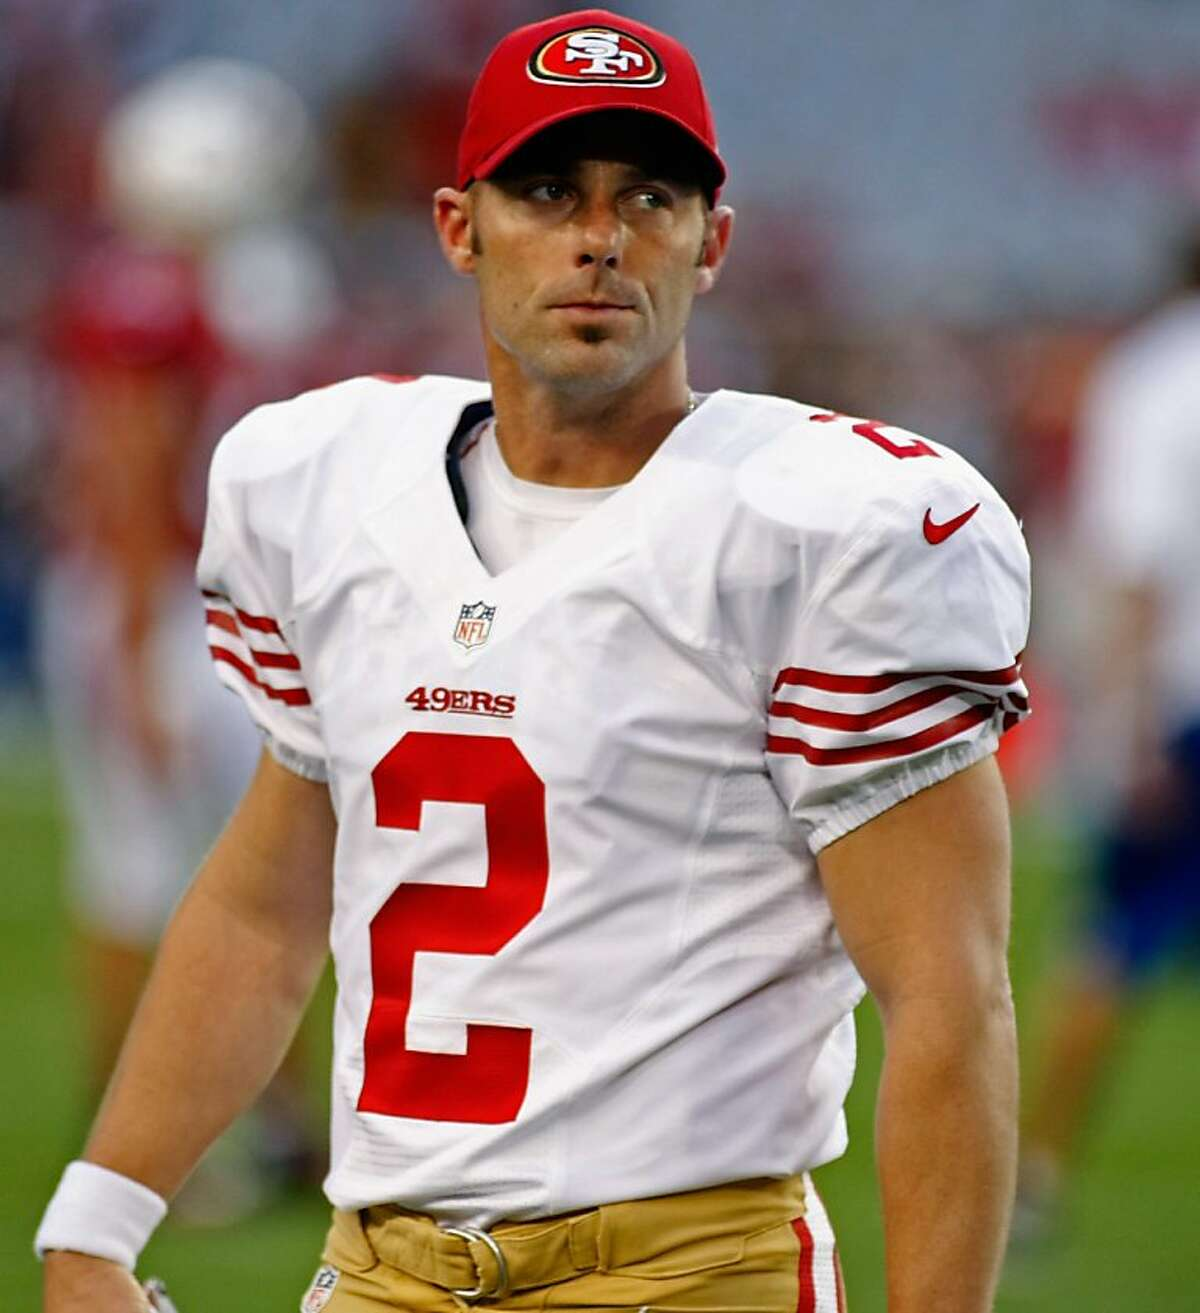 GLENDALE, AZ - OCTOBER 29: Kicker David Akers #2 of the San Francisco 49ers walks off the field during an NFL game against the Arizona Cardinals at University of Phoenix Stadium on October 29, 2012 in Glendale, Arizona. (Photo by Ralph Freso/Getty Images) GLENDALE, AZ - OCTOBER 29: Kicker David Akers #2 of the San Francisco 49ers walks off the field during an NFL game against the Arizona Cardinals at University of Phoenix Stadium on October 29, 2012 in Glendale, Arizona. (Photo by Ralph Freso/Getty Images)